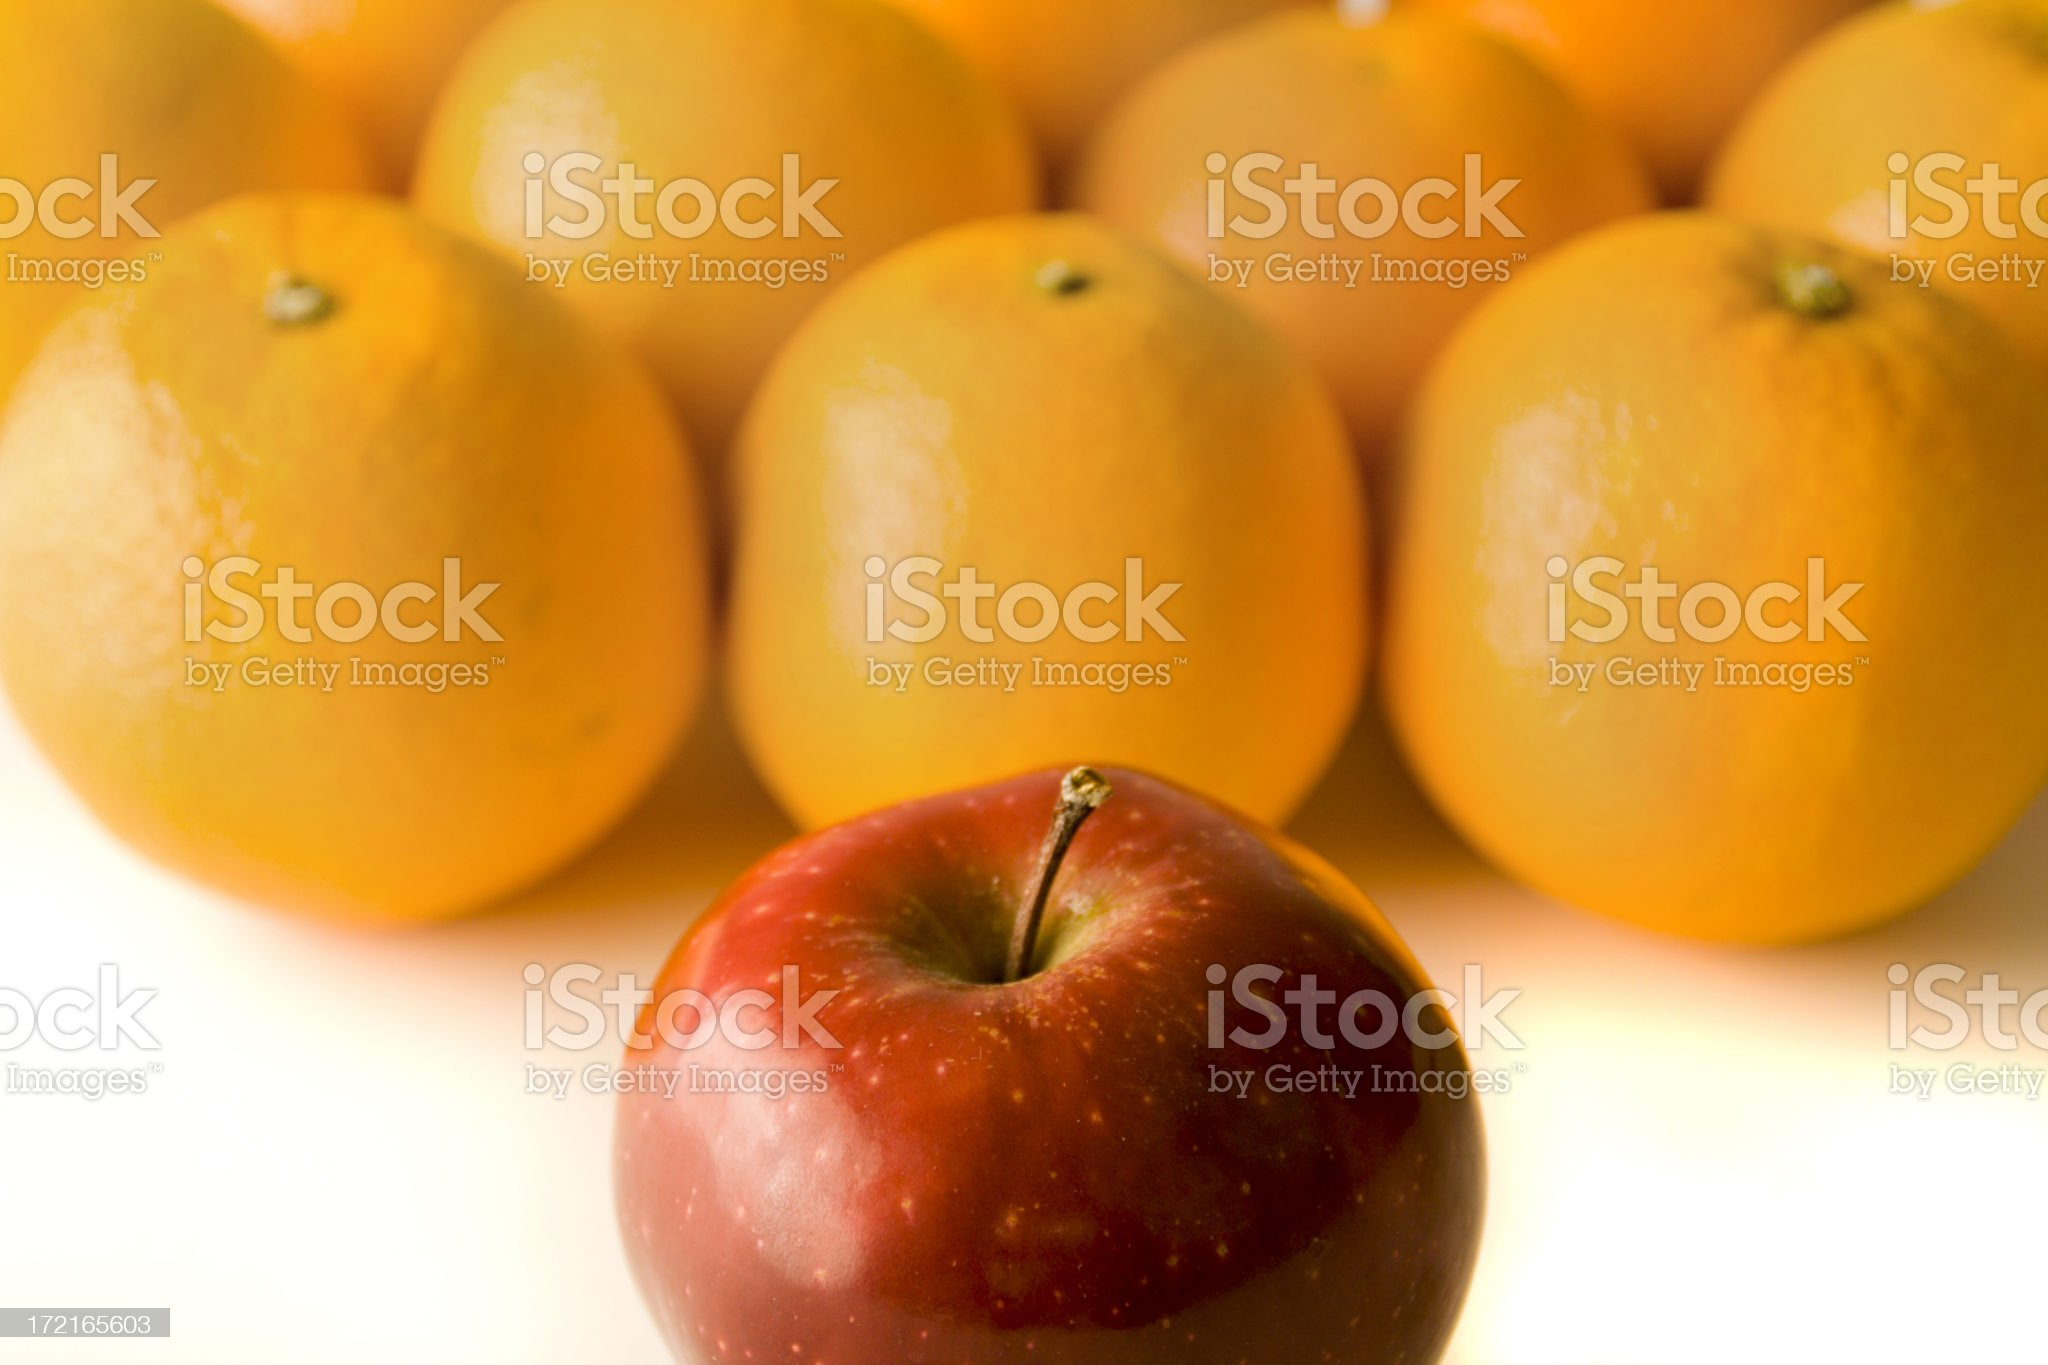 Comparisons—Individual Apple Standing out from the Crowd of Oranges royalty-free stock photo